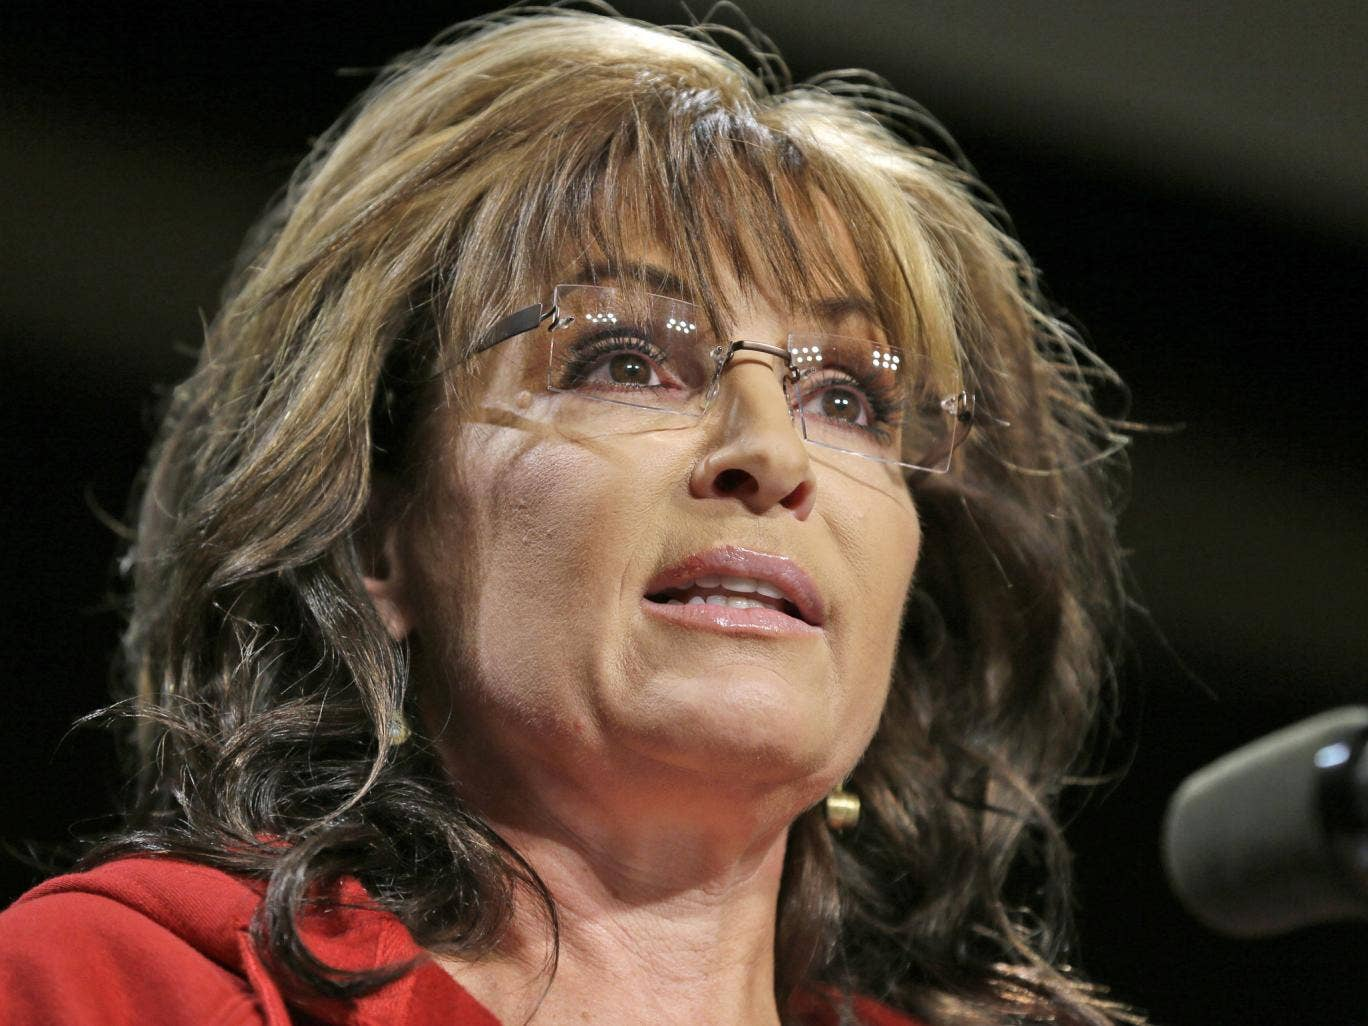 Sarah Palin has launched her own television channel